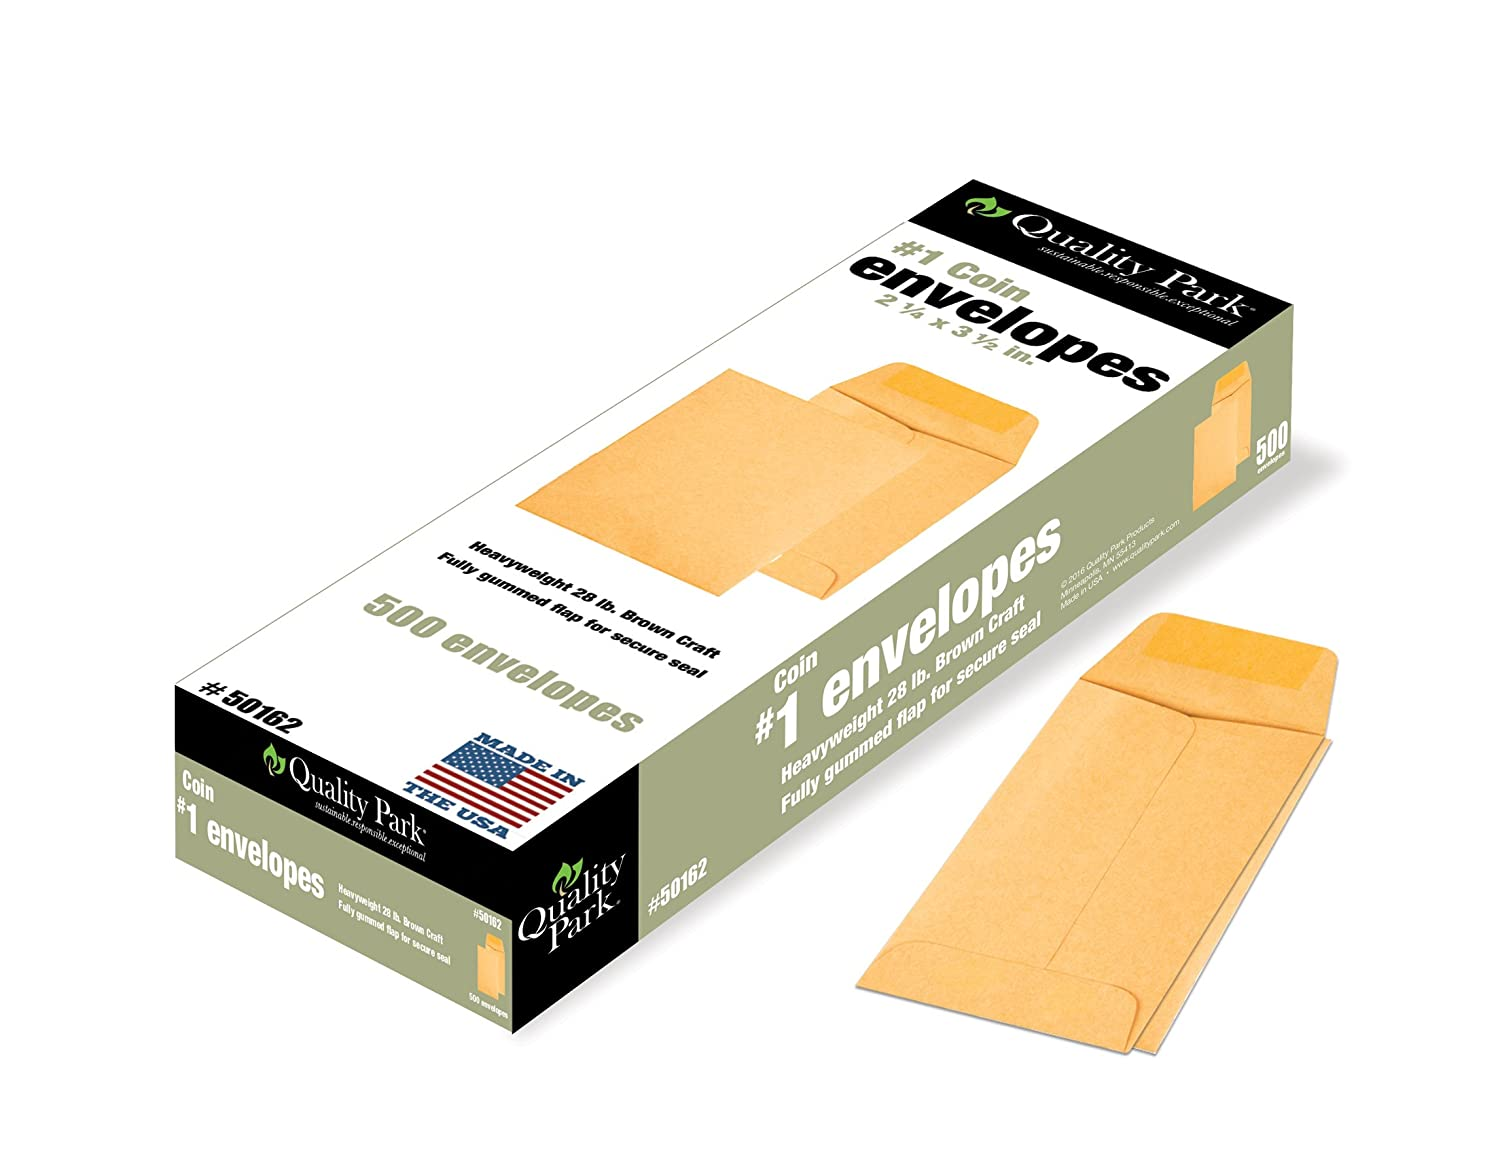 #1 Coin and Small Parts Envelope with Gummed Flap for Home or Office Use, 28 lb. Brown Kraft, 2-1/4 x 3-1/2, 500 per Box (50162)